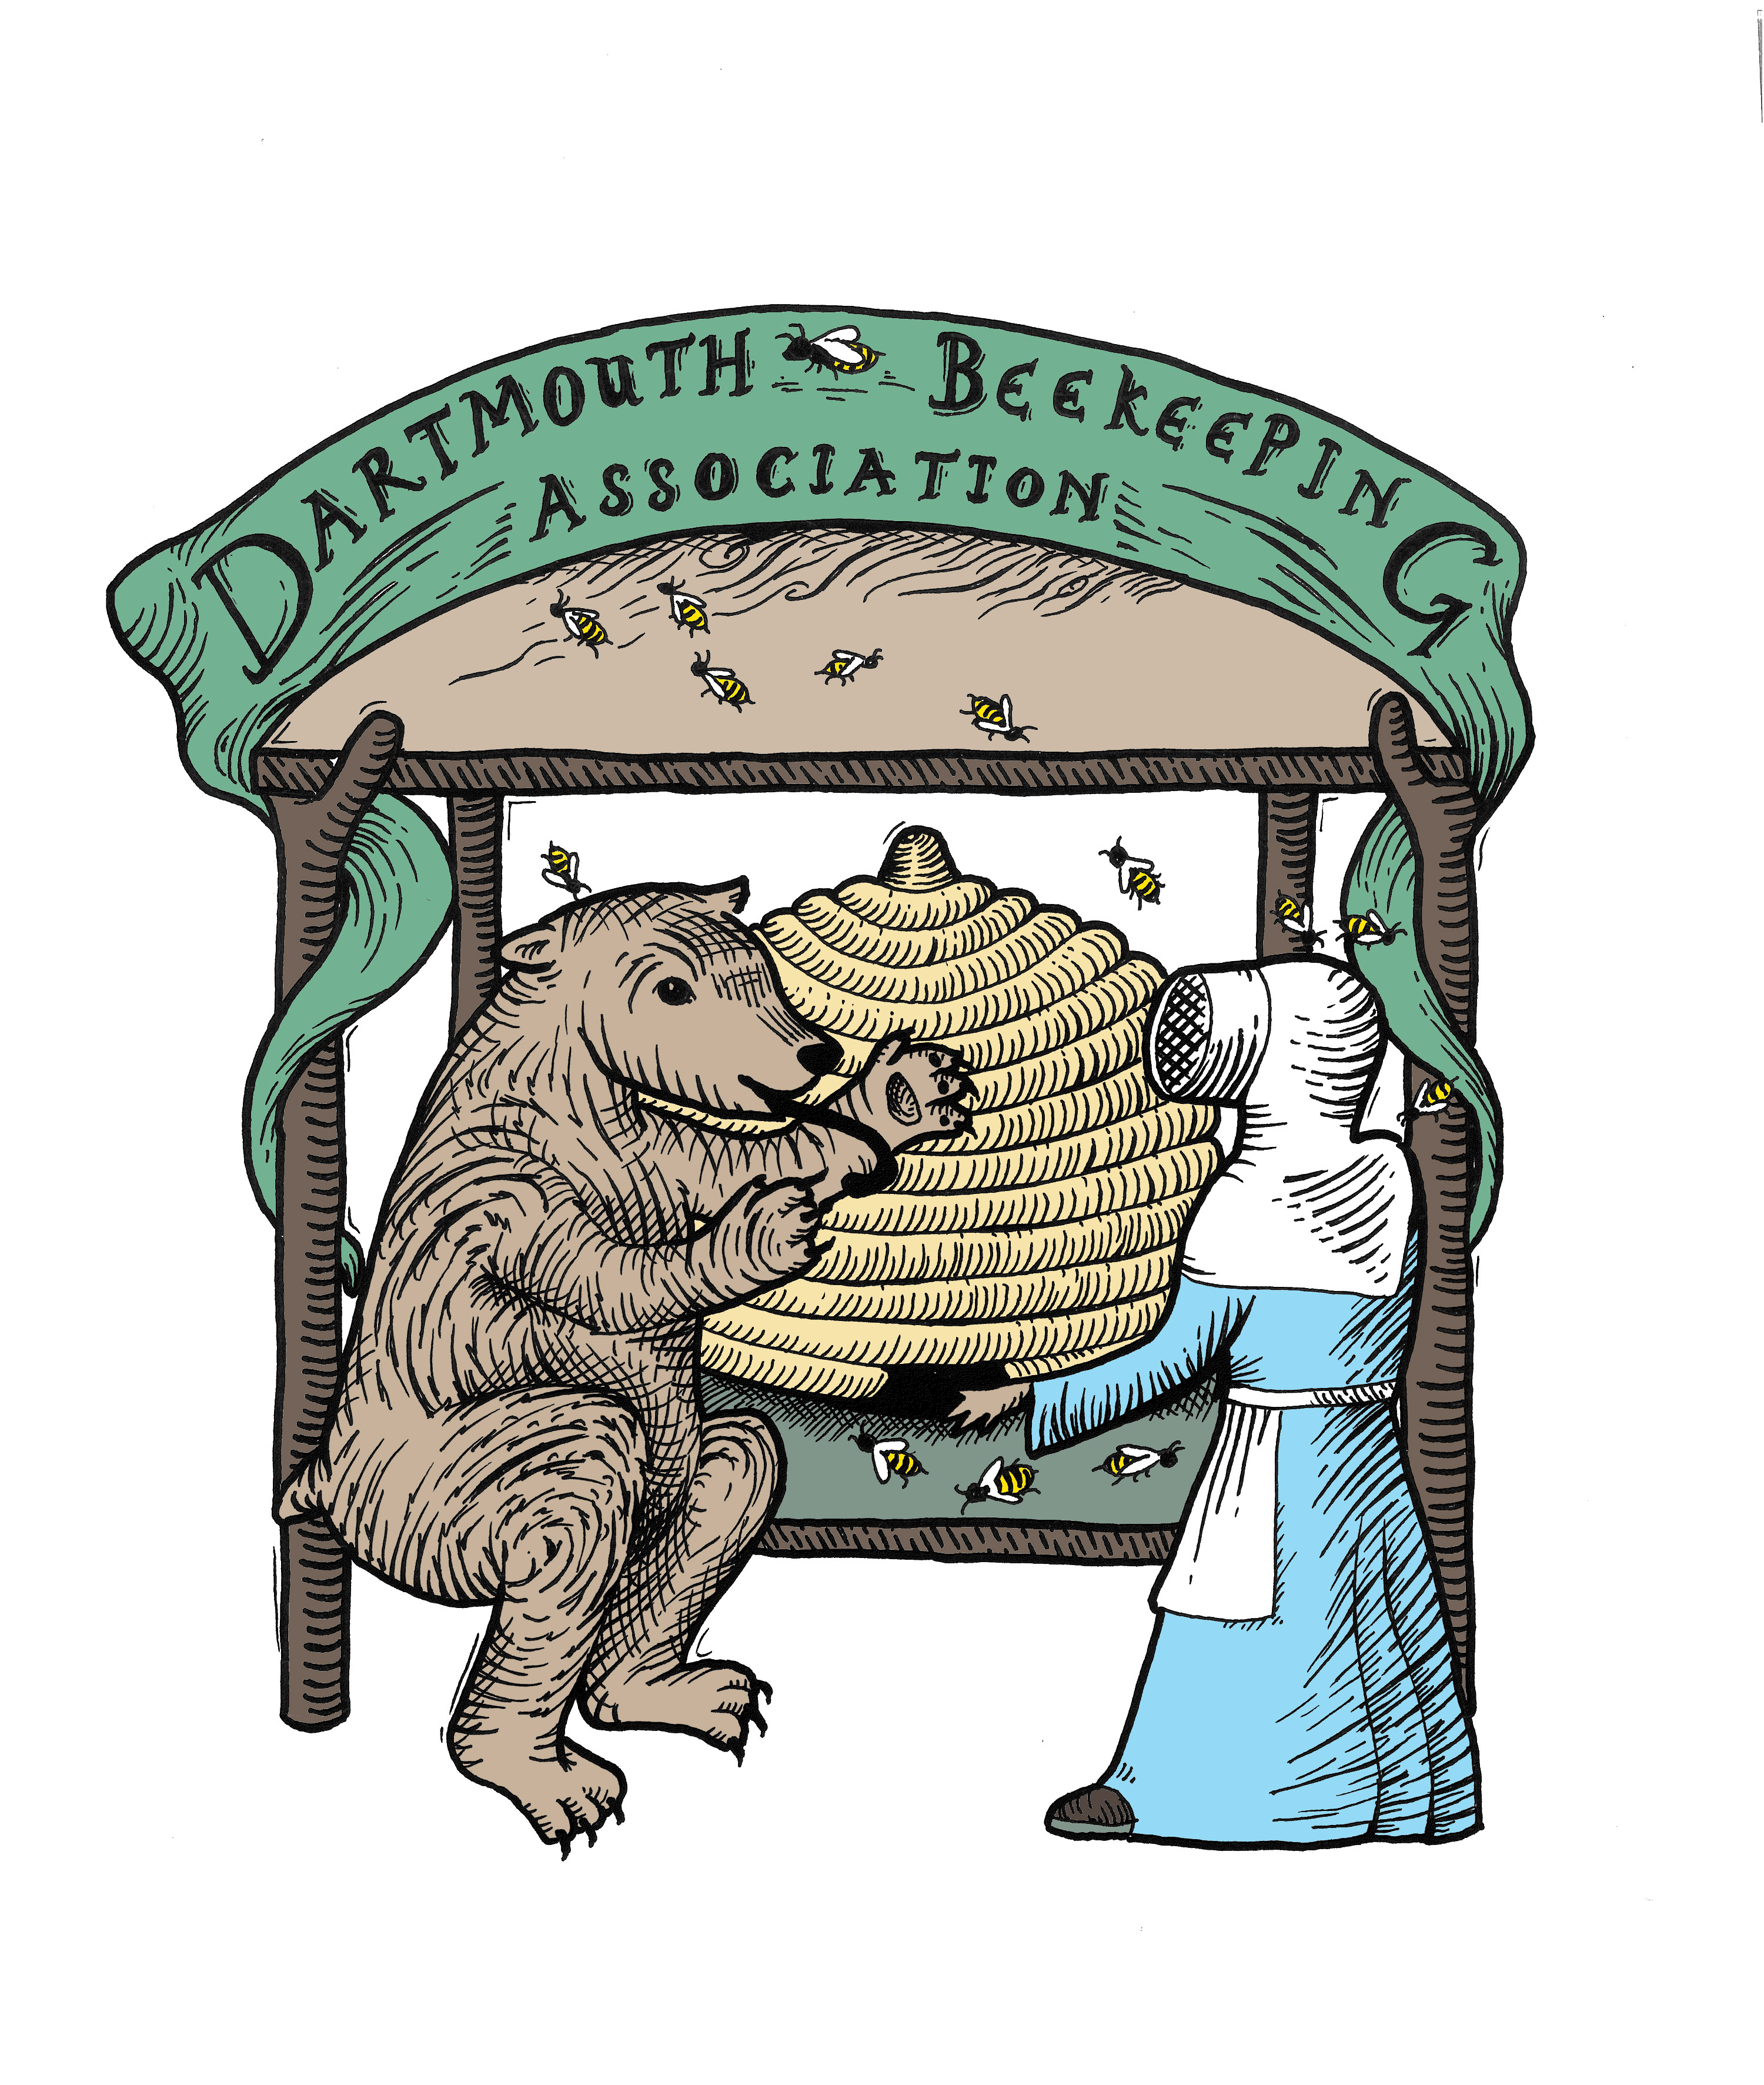 Dartmouth Beekeeping Association.